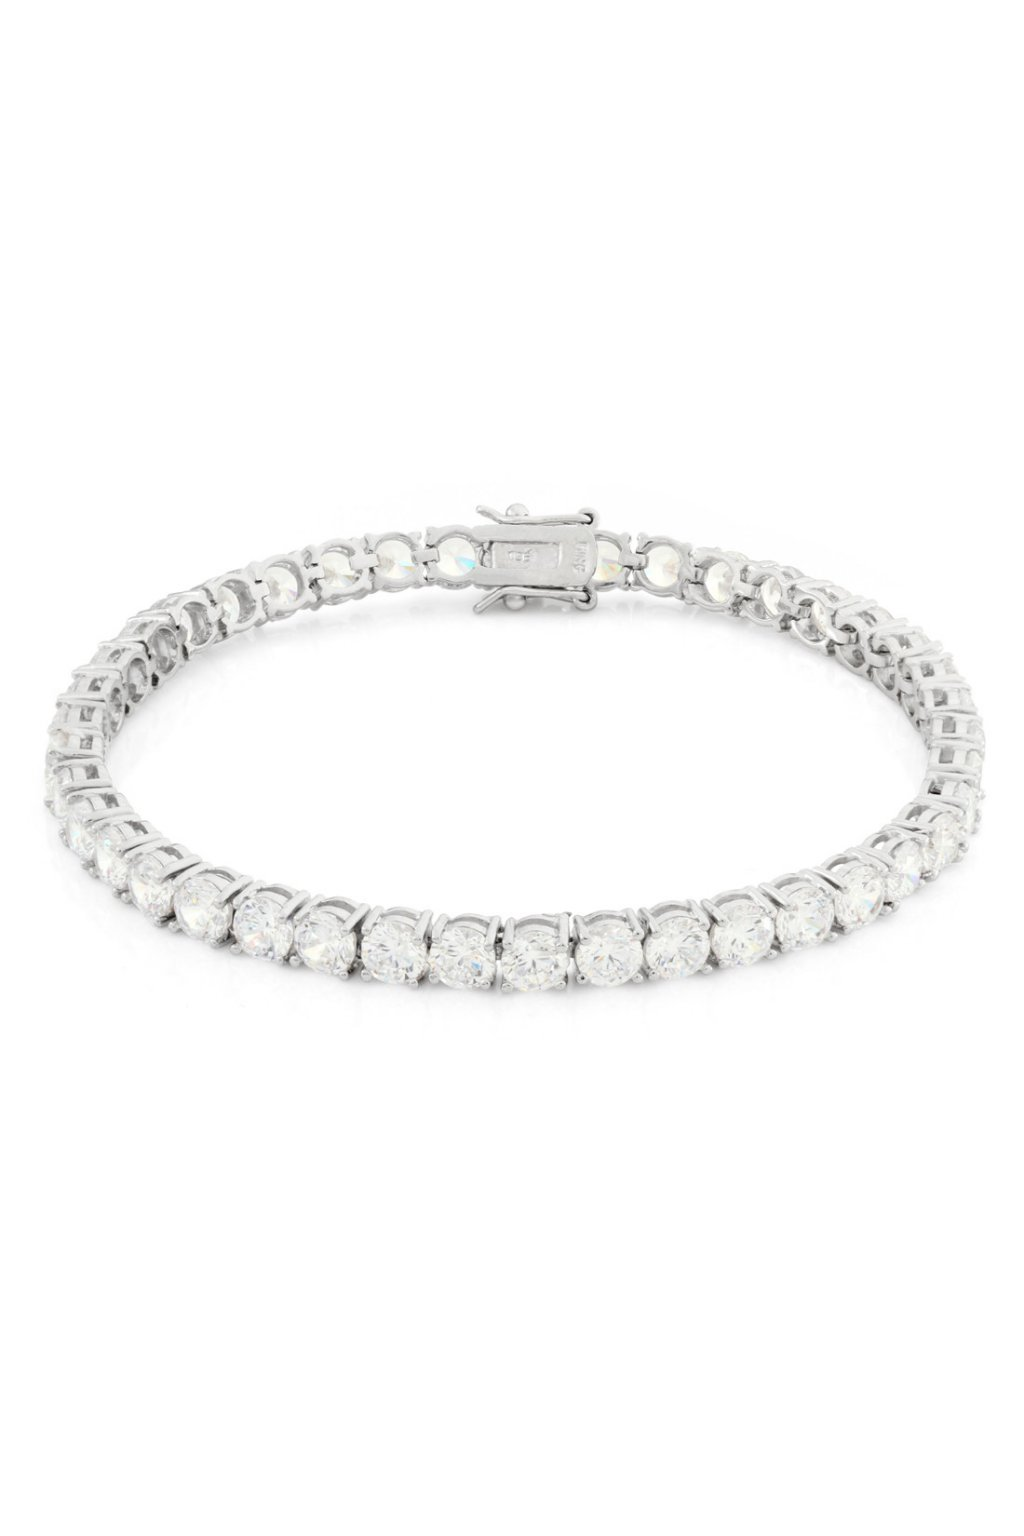 BRX00349 5mm White Gold Single Row Pharaoh Bracelet